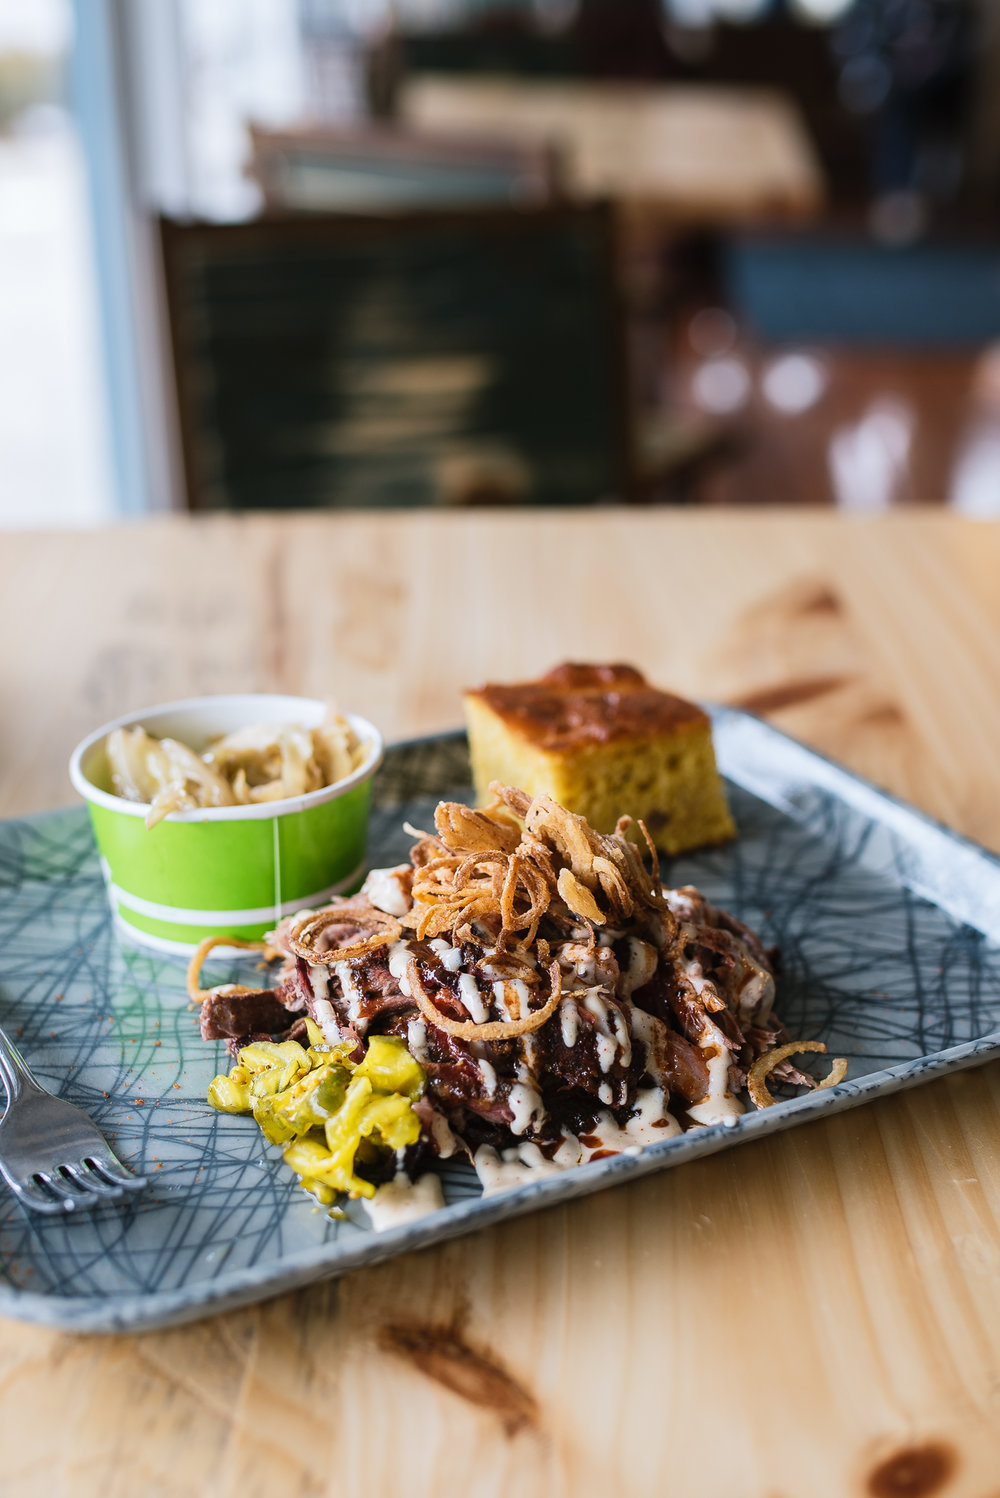 Pulled pork - whiskey sauce, Alabama white BBQ sauce, crispy shallots